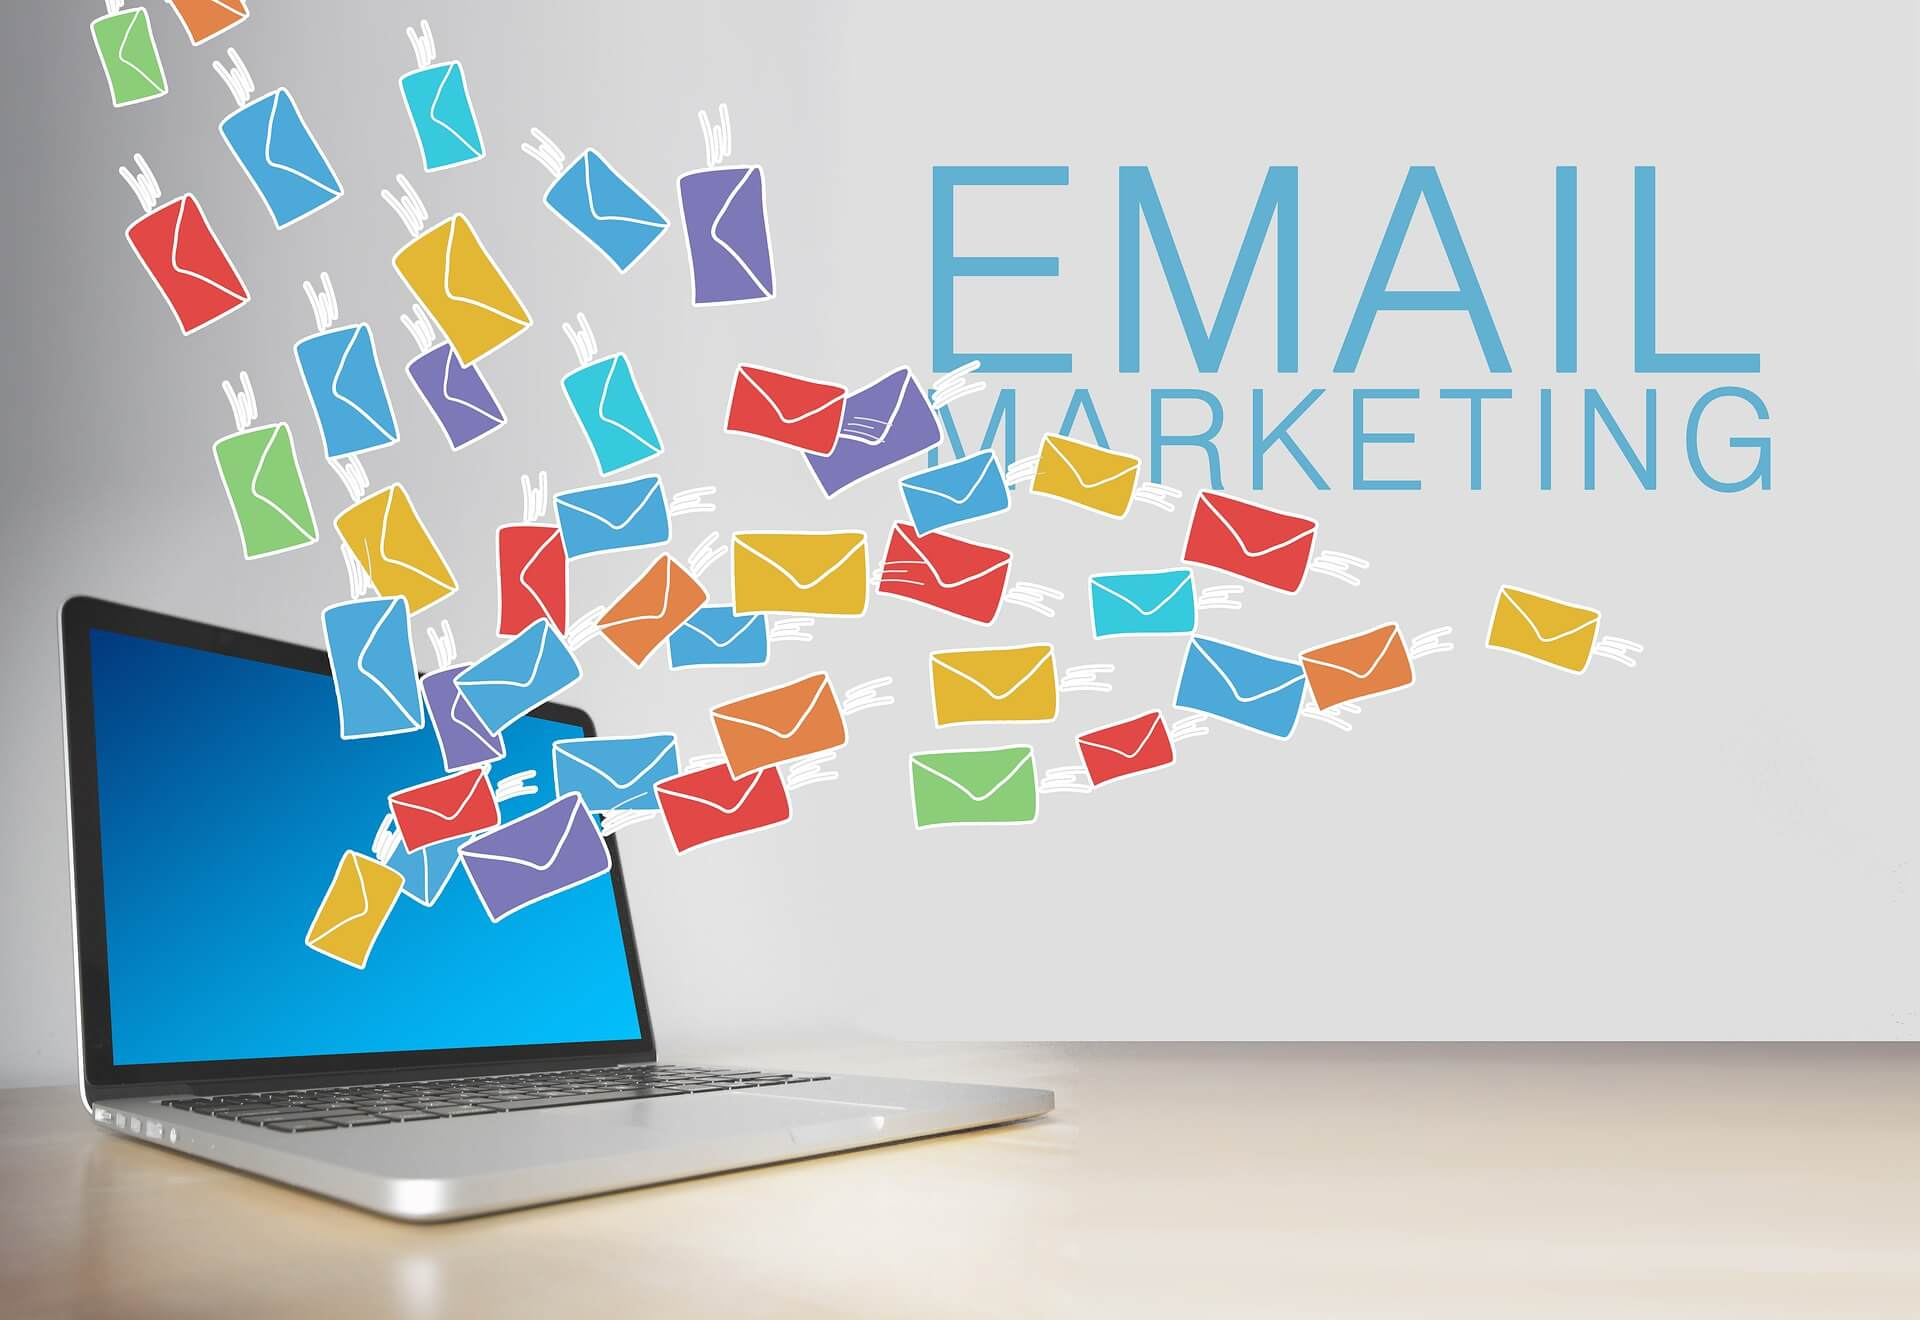 Why Should You Use Email Marketing for Businesses?